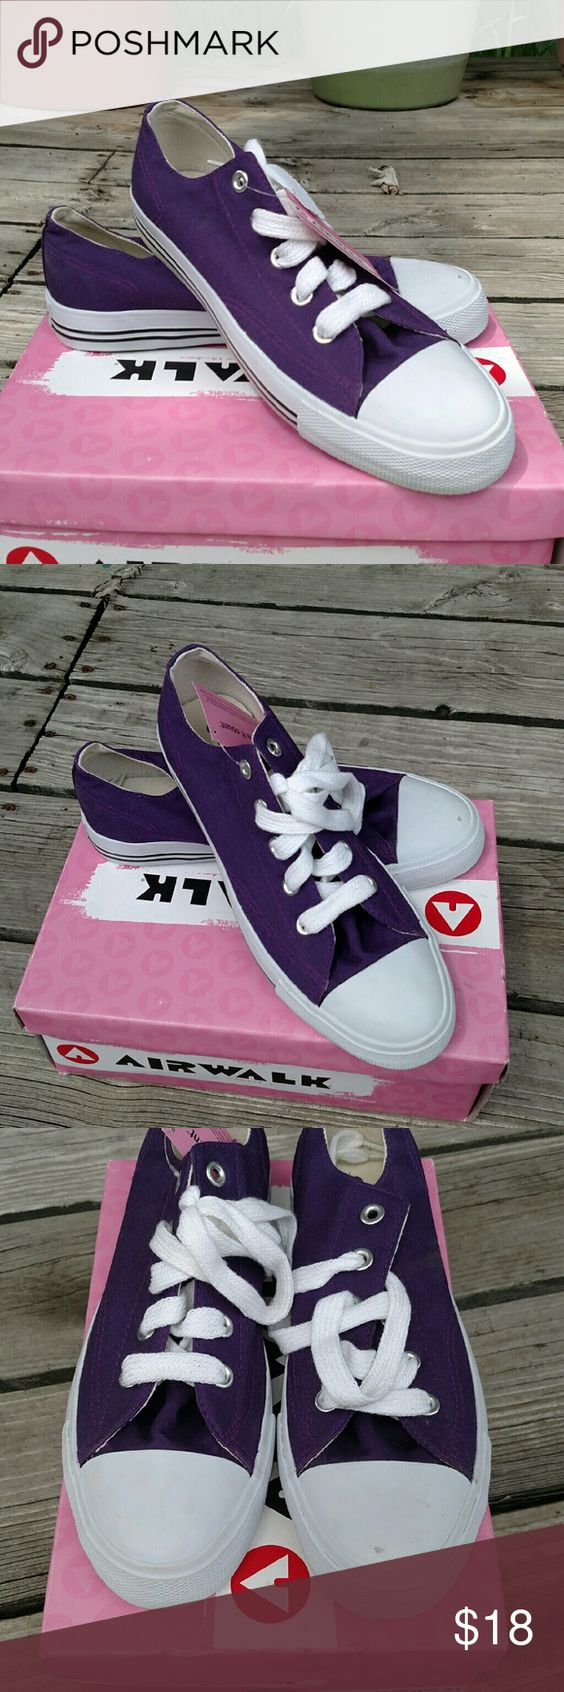 Airwalk Sneakers Size 8 Women's Airwalk Sneakers in purple. They have never been worn before and still have the original tags and box with them. There is a small scuff on the toe of the left shoe, but other than that, they are in excellent condition. Airwalk Shoes Sneakers